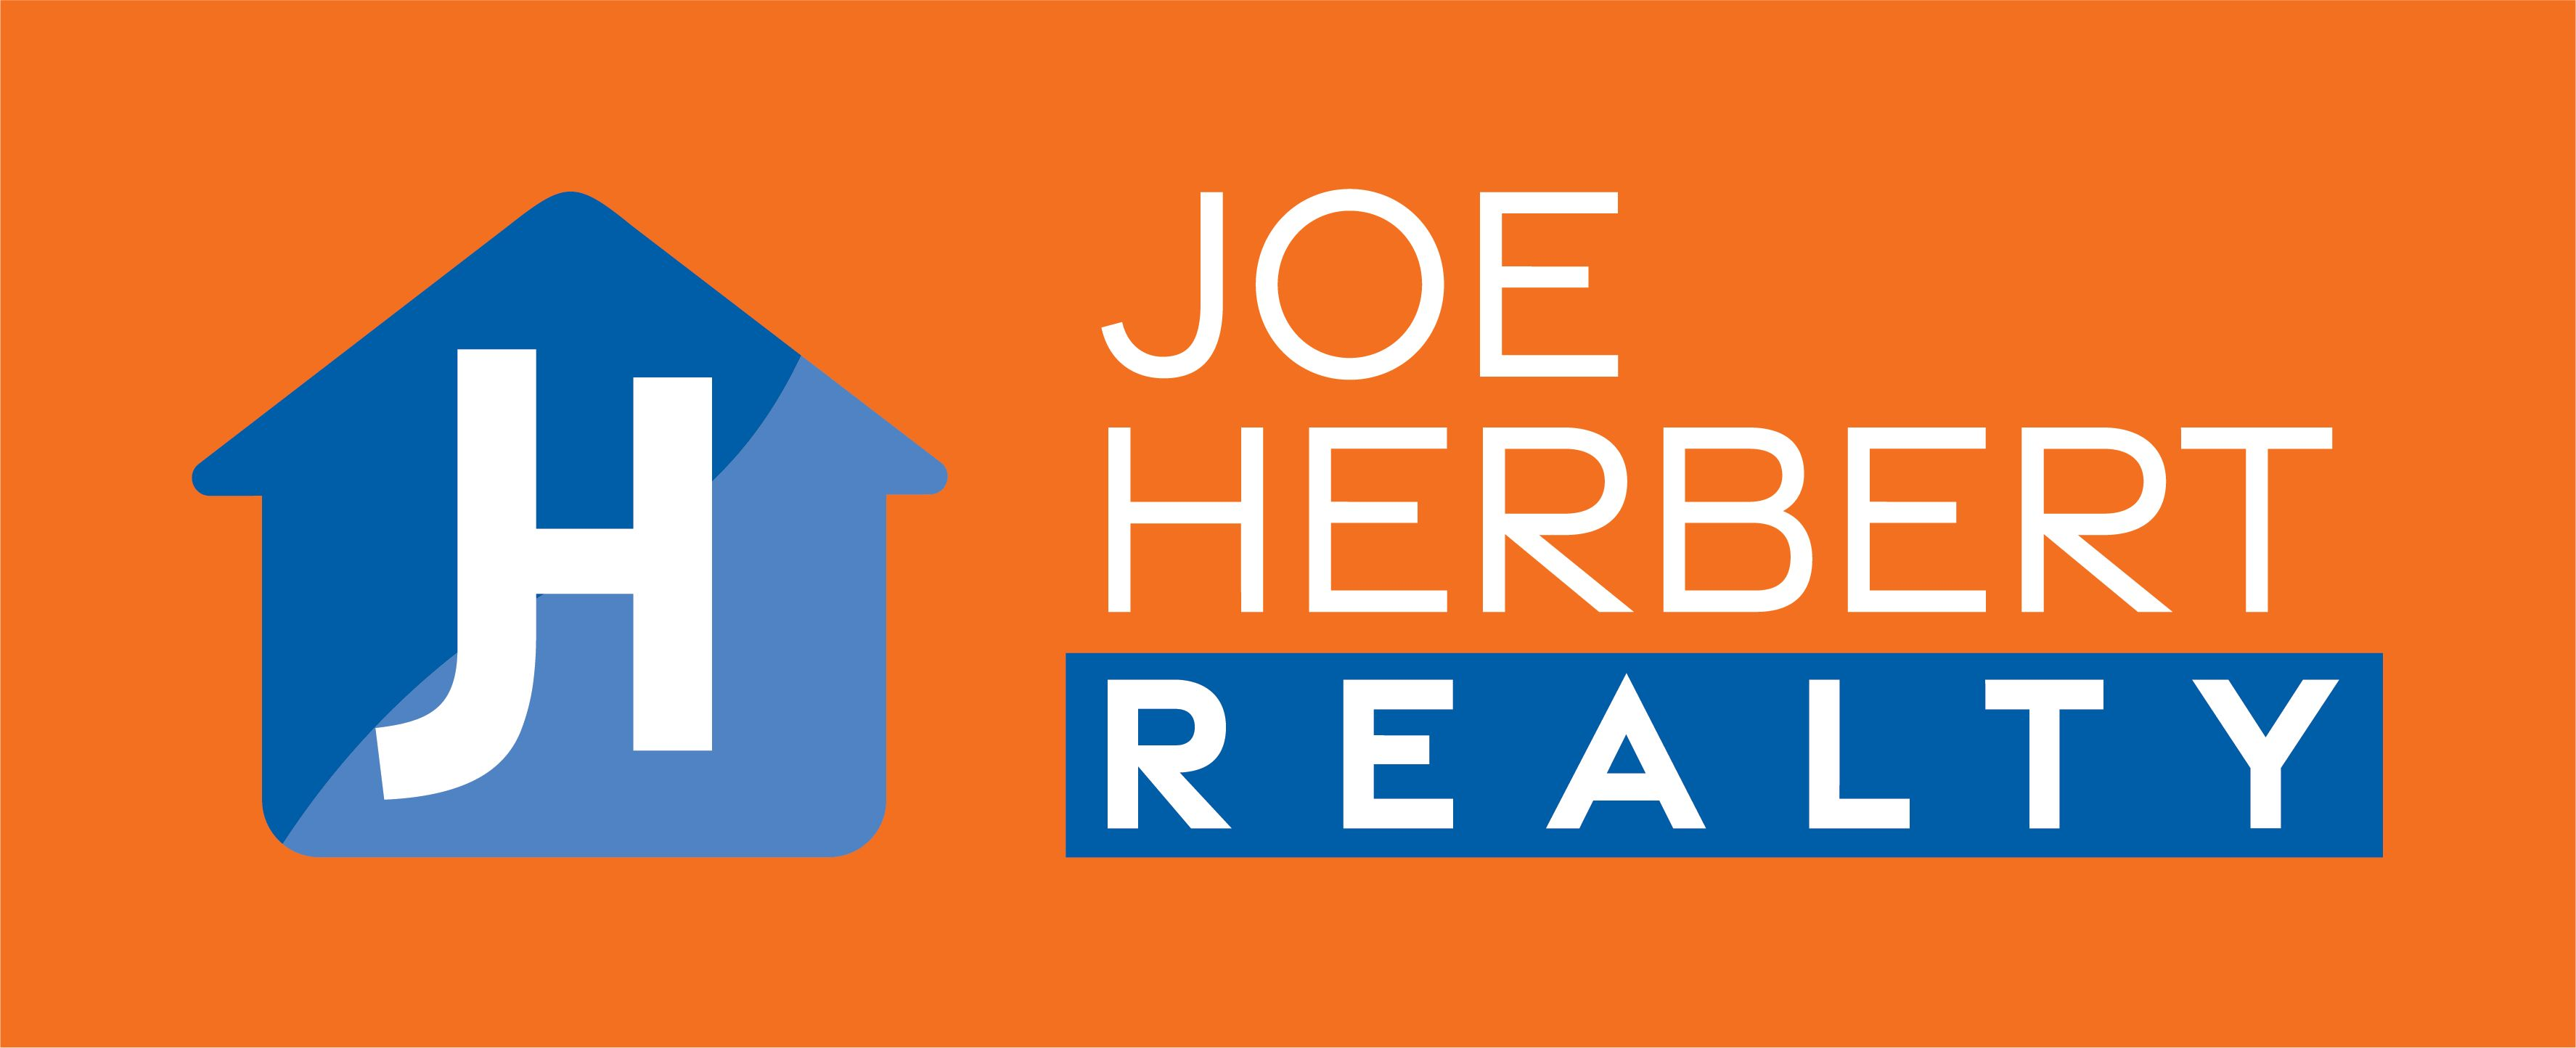 Joe Herbert Realty is Your Best Move!